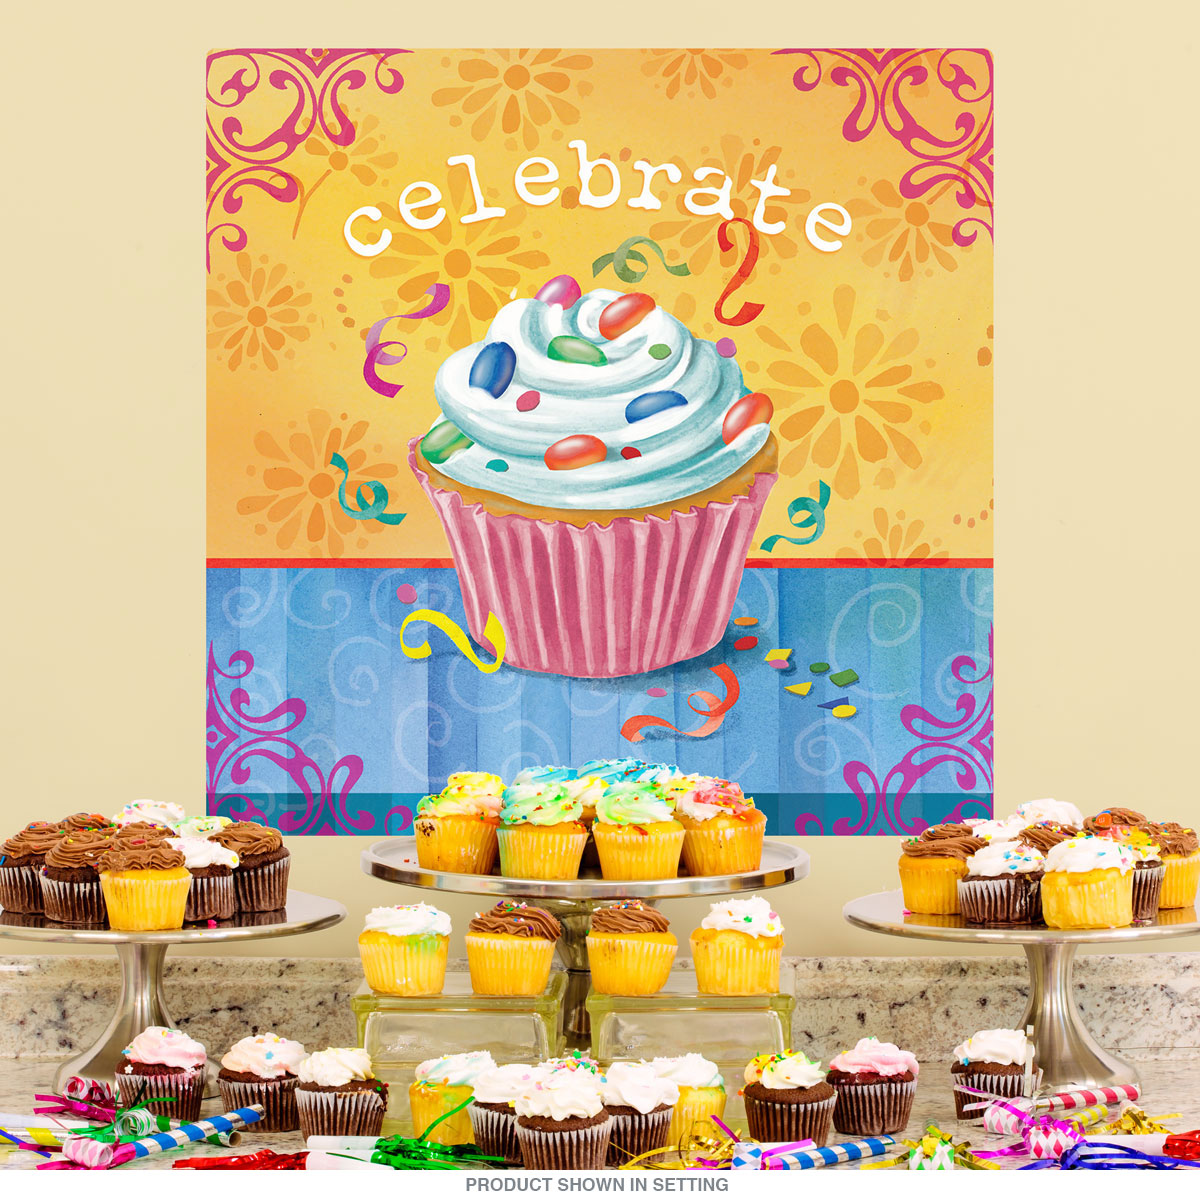 Delighted Wall E Birthday Party Decorations Images - The Wall Art ...